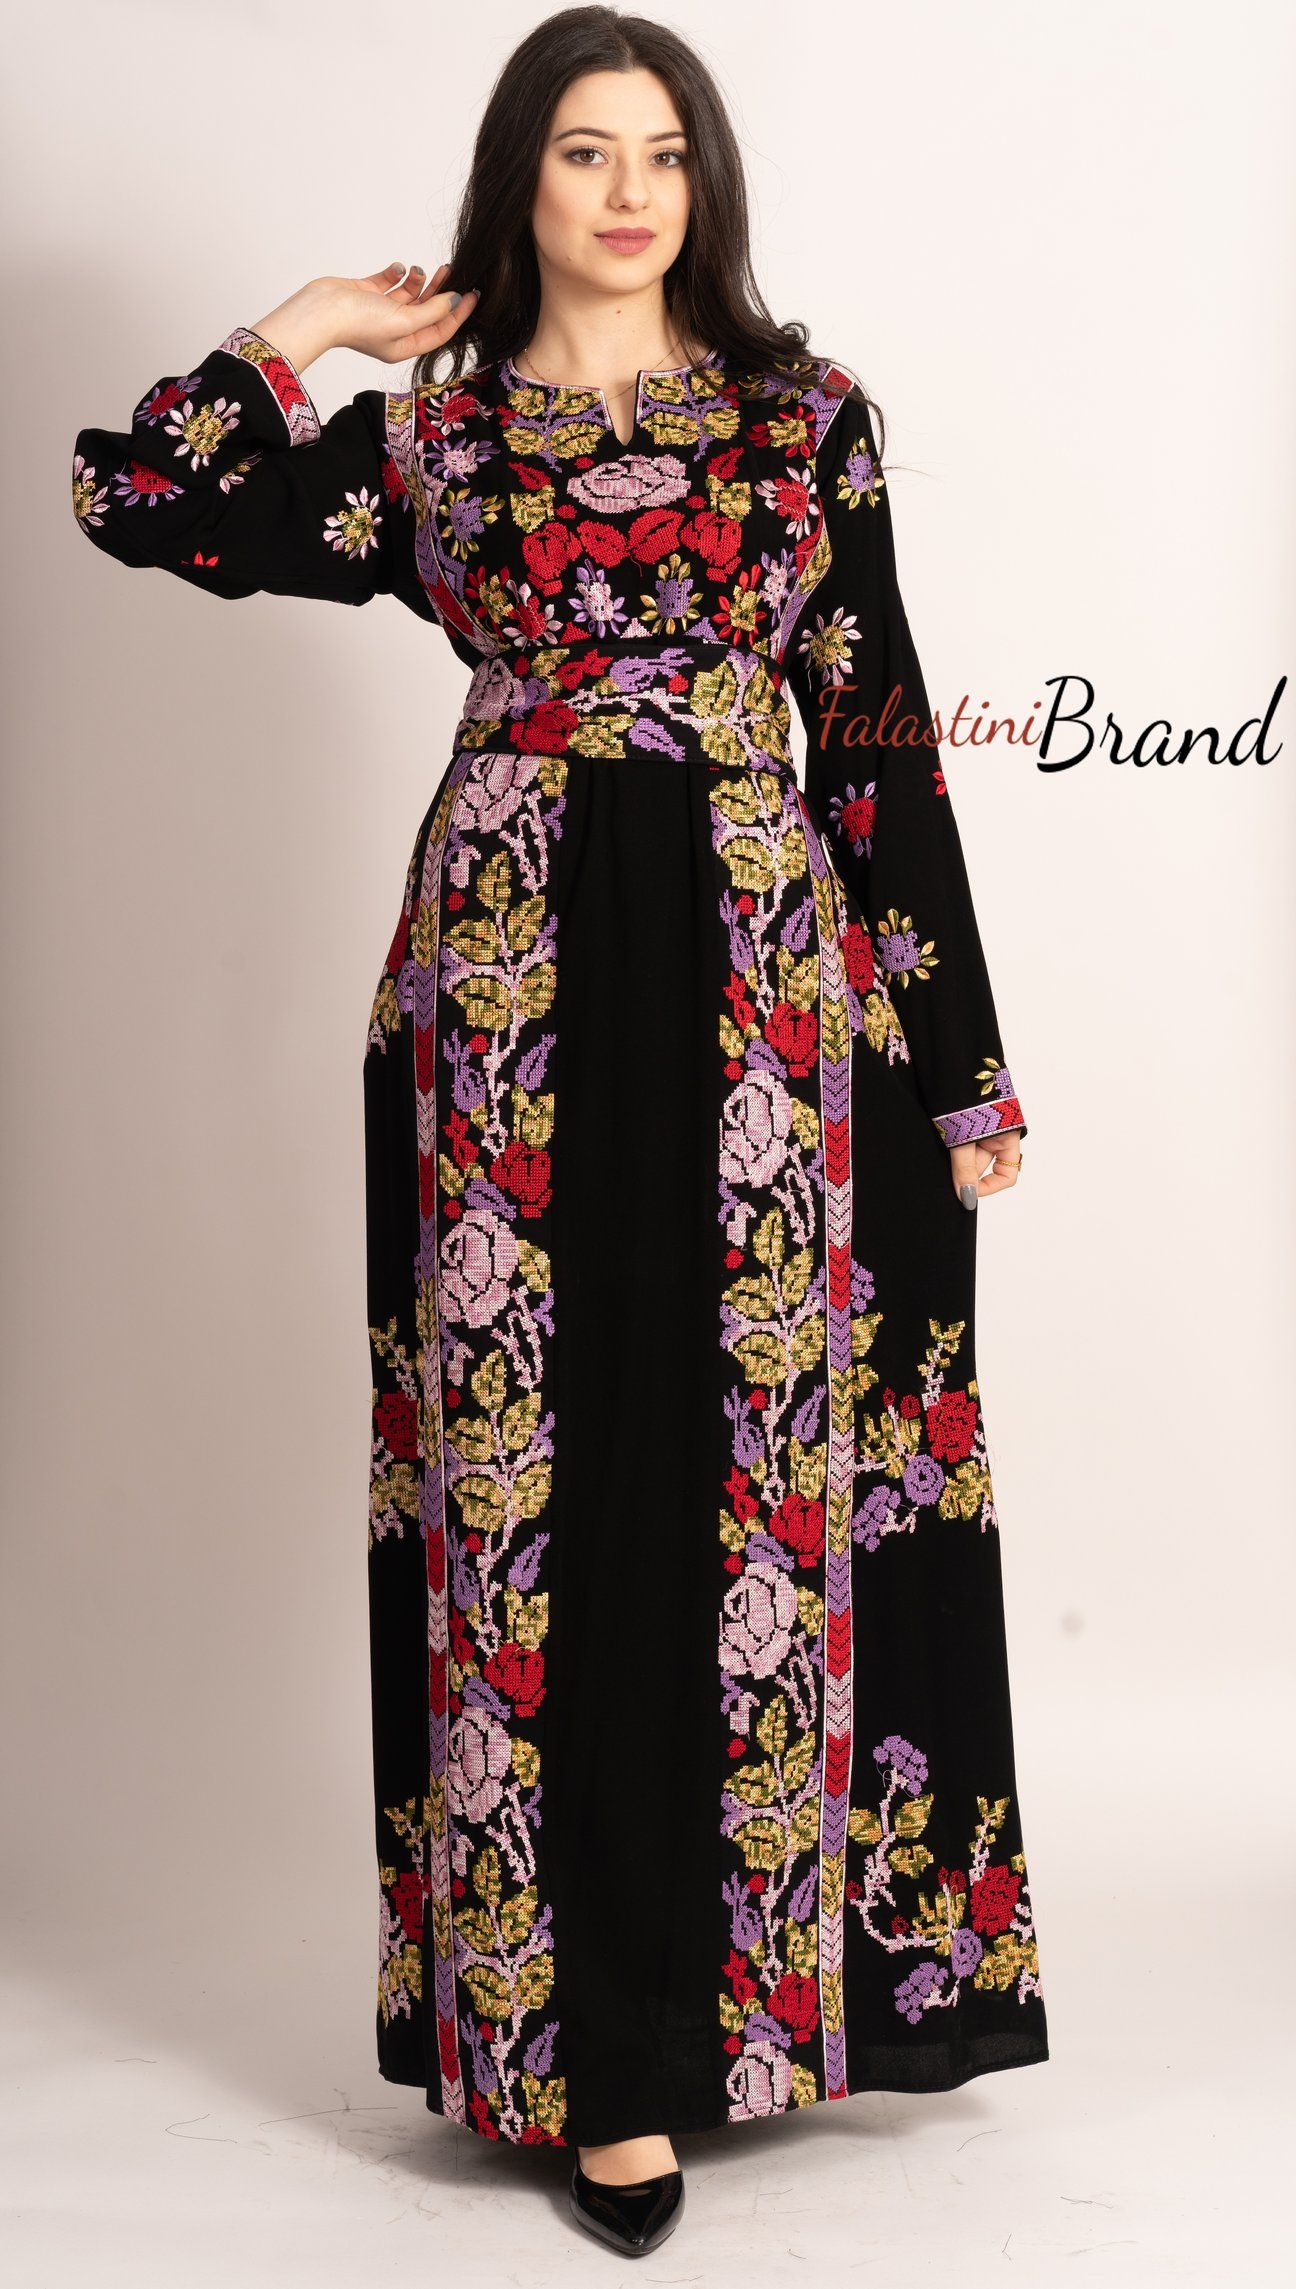 C1 Amazing Floral Palestinian Embroidered Thobe Dress Long Sleeves Cross Stitch Embroidery Falastini B Long Sleeve Dress Palestinian Embroidery Dress Dresses [ 2289 x 1296 Pixel ]